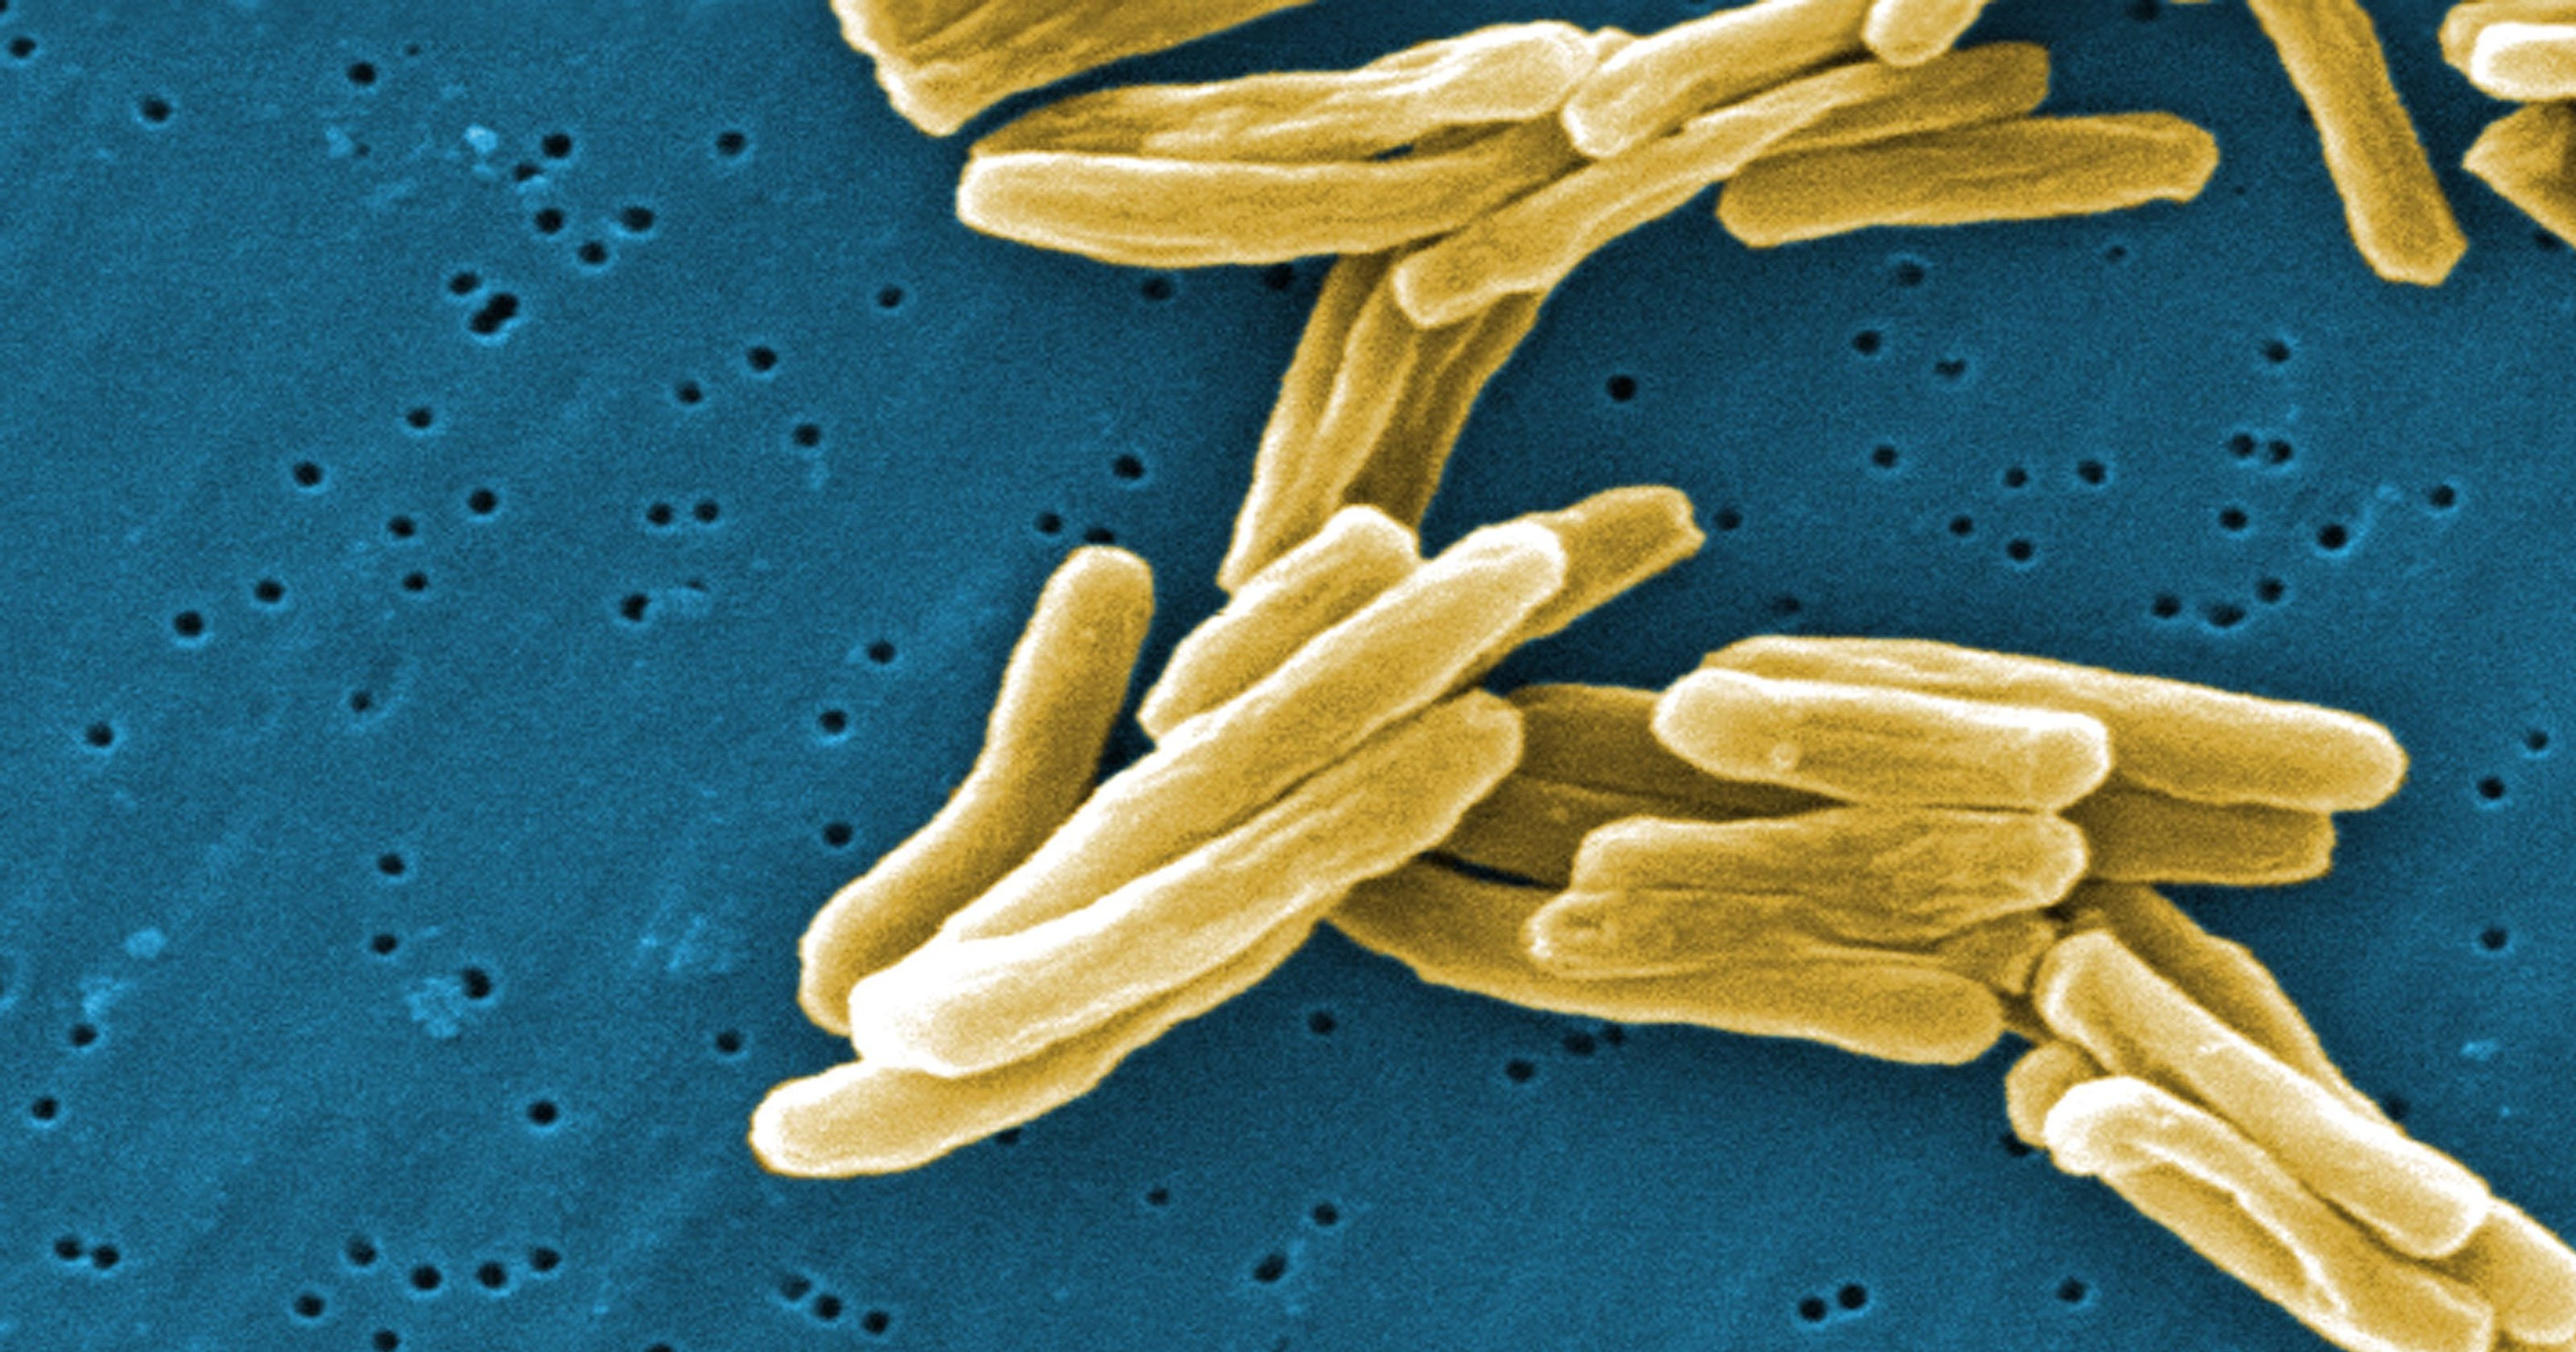 27 Kansas students test positive for tuberculosis